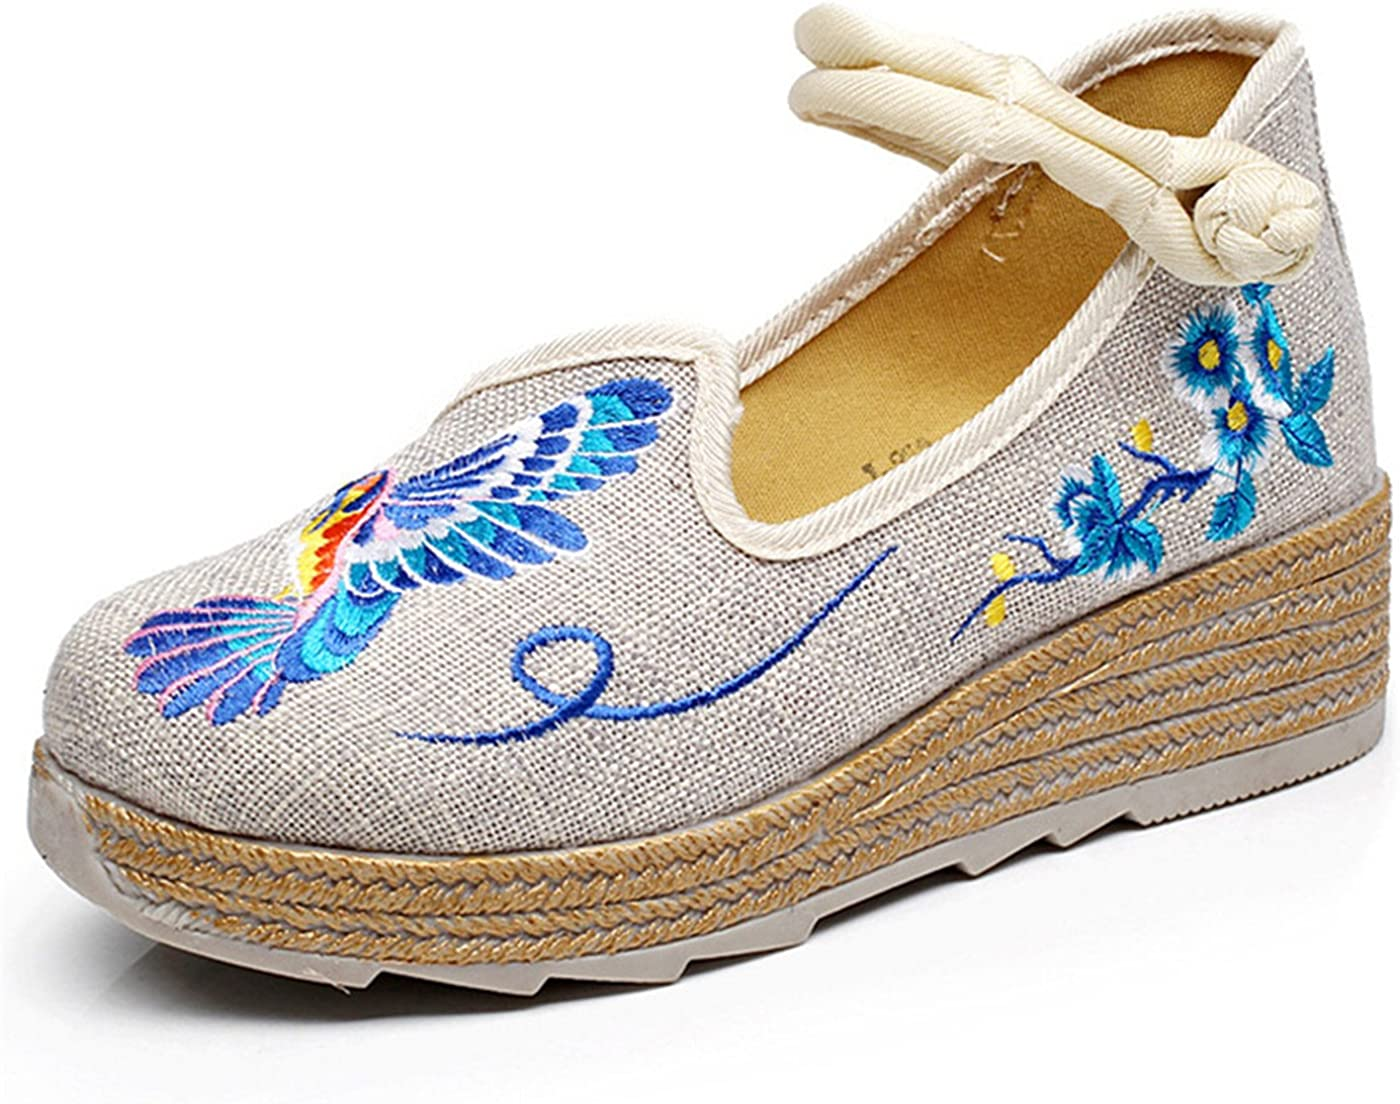 Qhome Womens Floral Embroidery Comfortable Linen Casual Walking Elevator Wedge Shoes